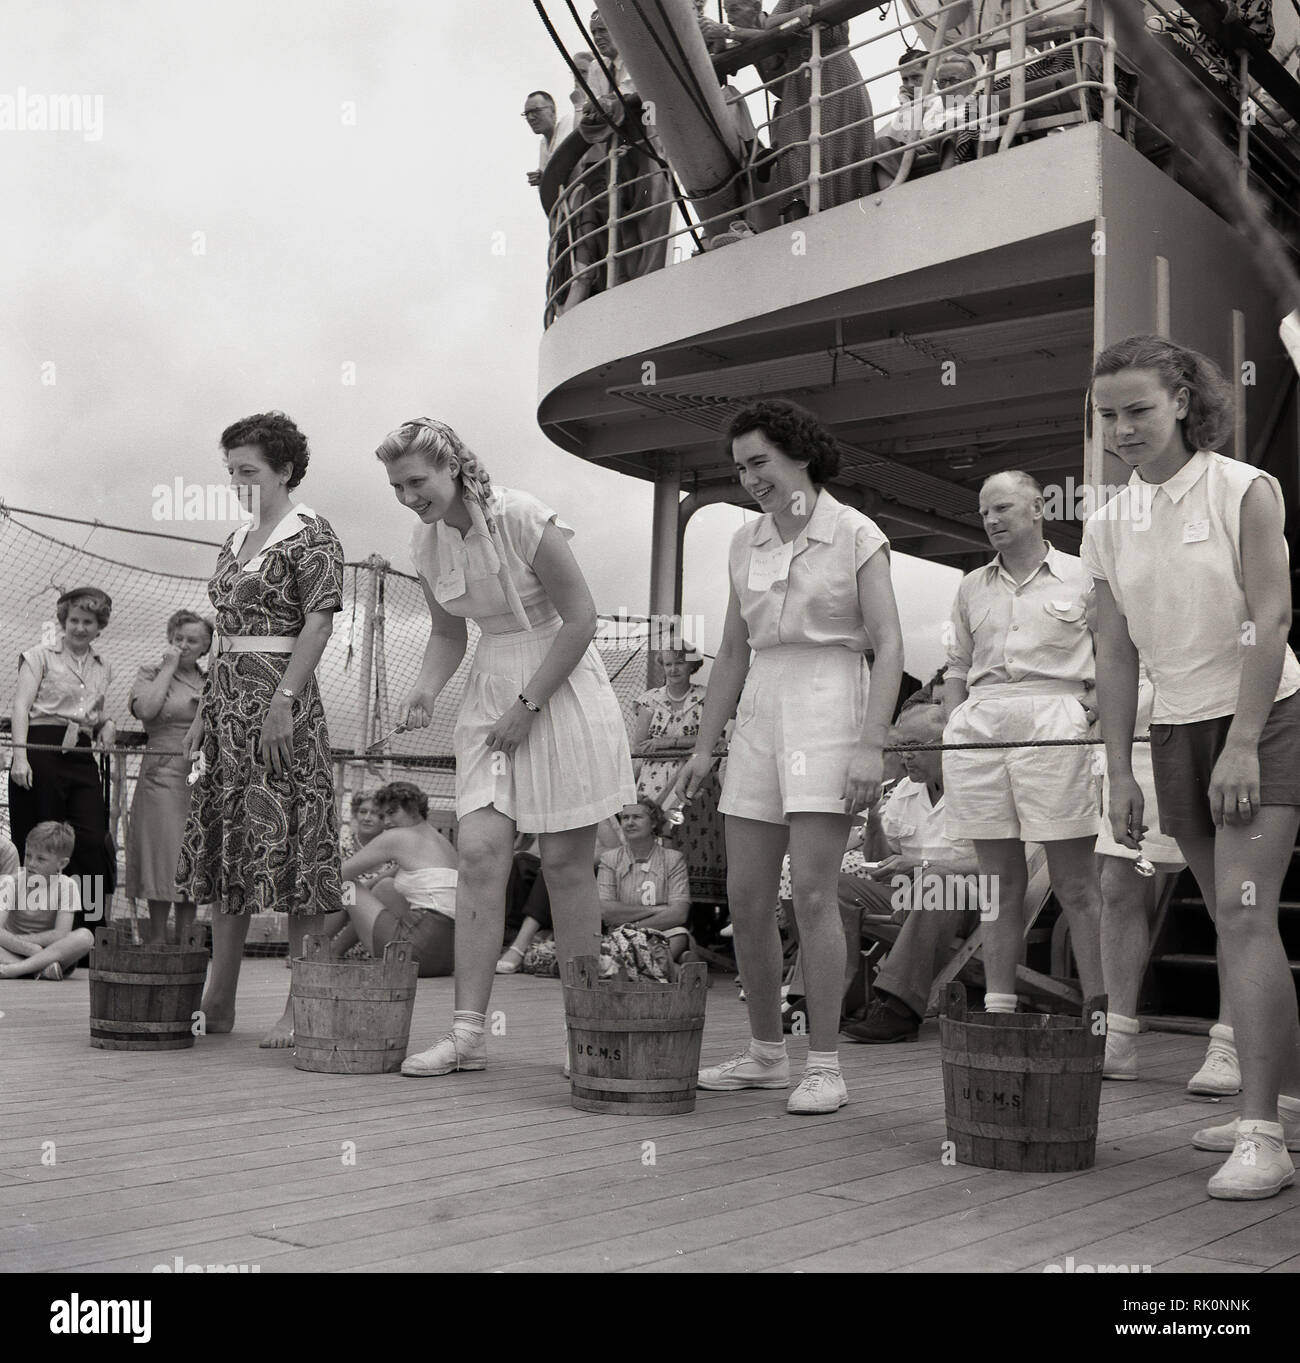 1950s, historical, female passengers with small wooden barrels beside them taking part a deck game onboard a Union-Caste steamship. - Stock Image